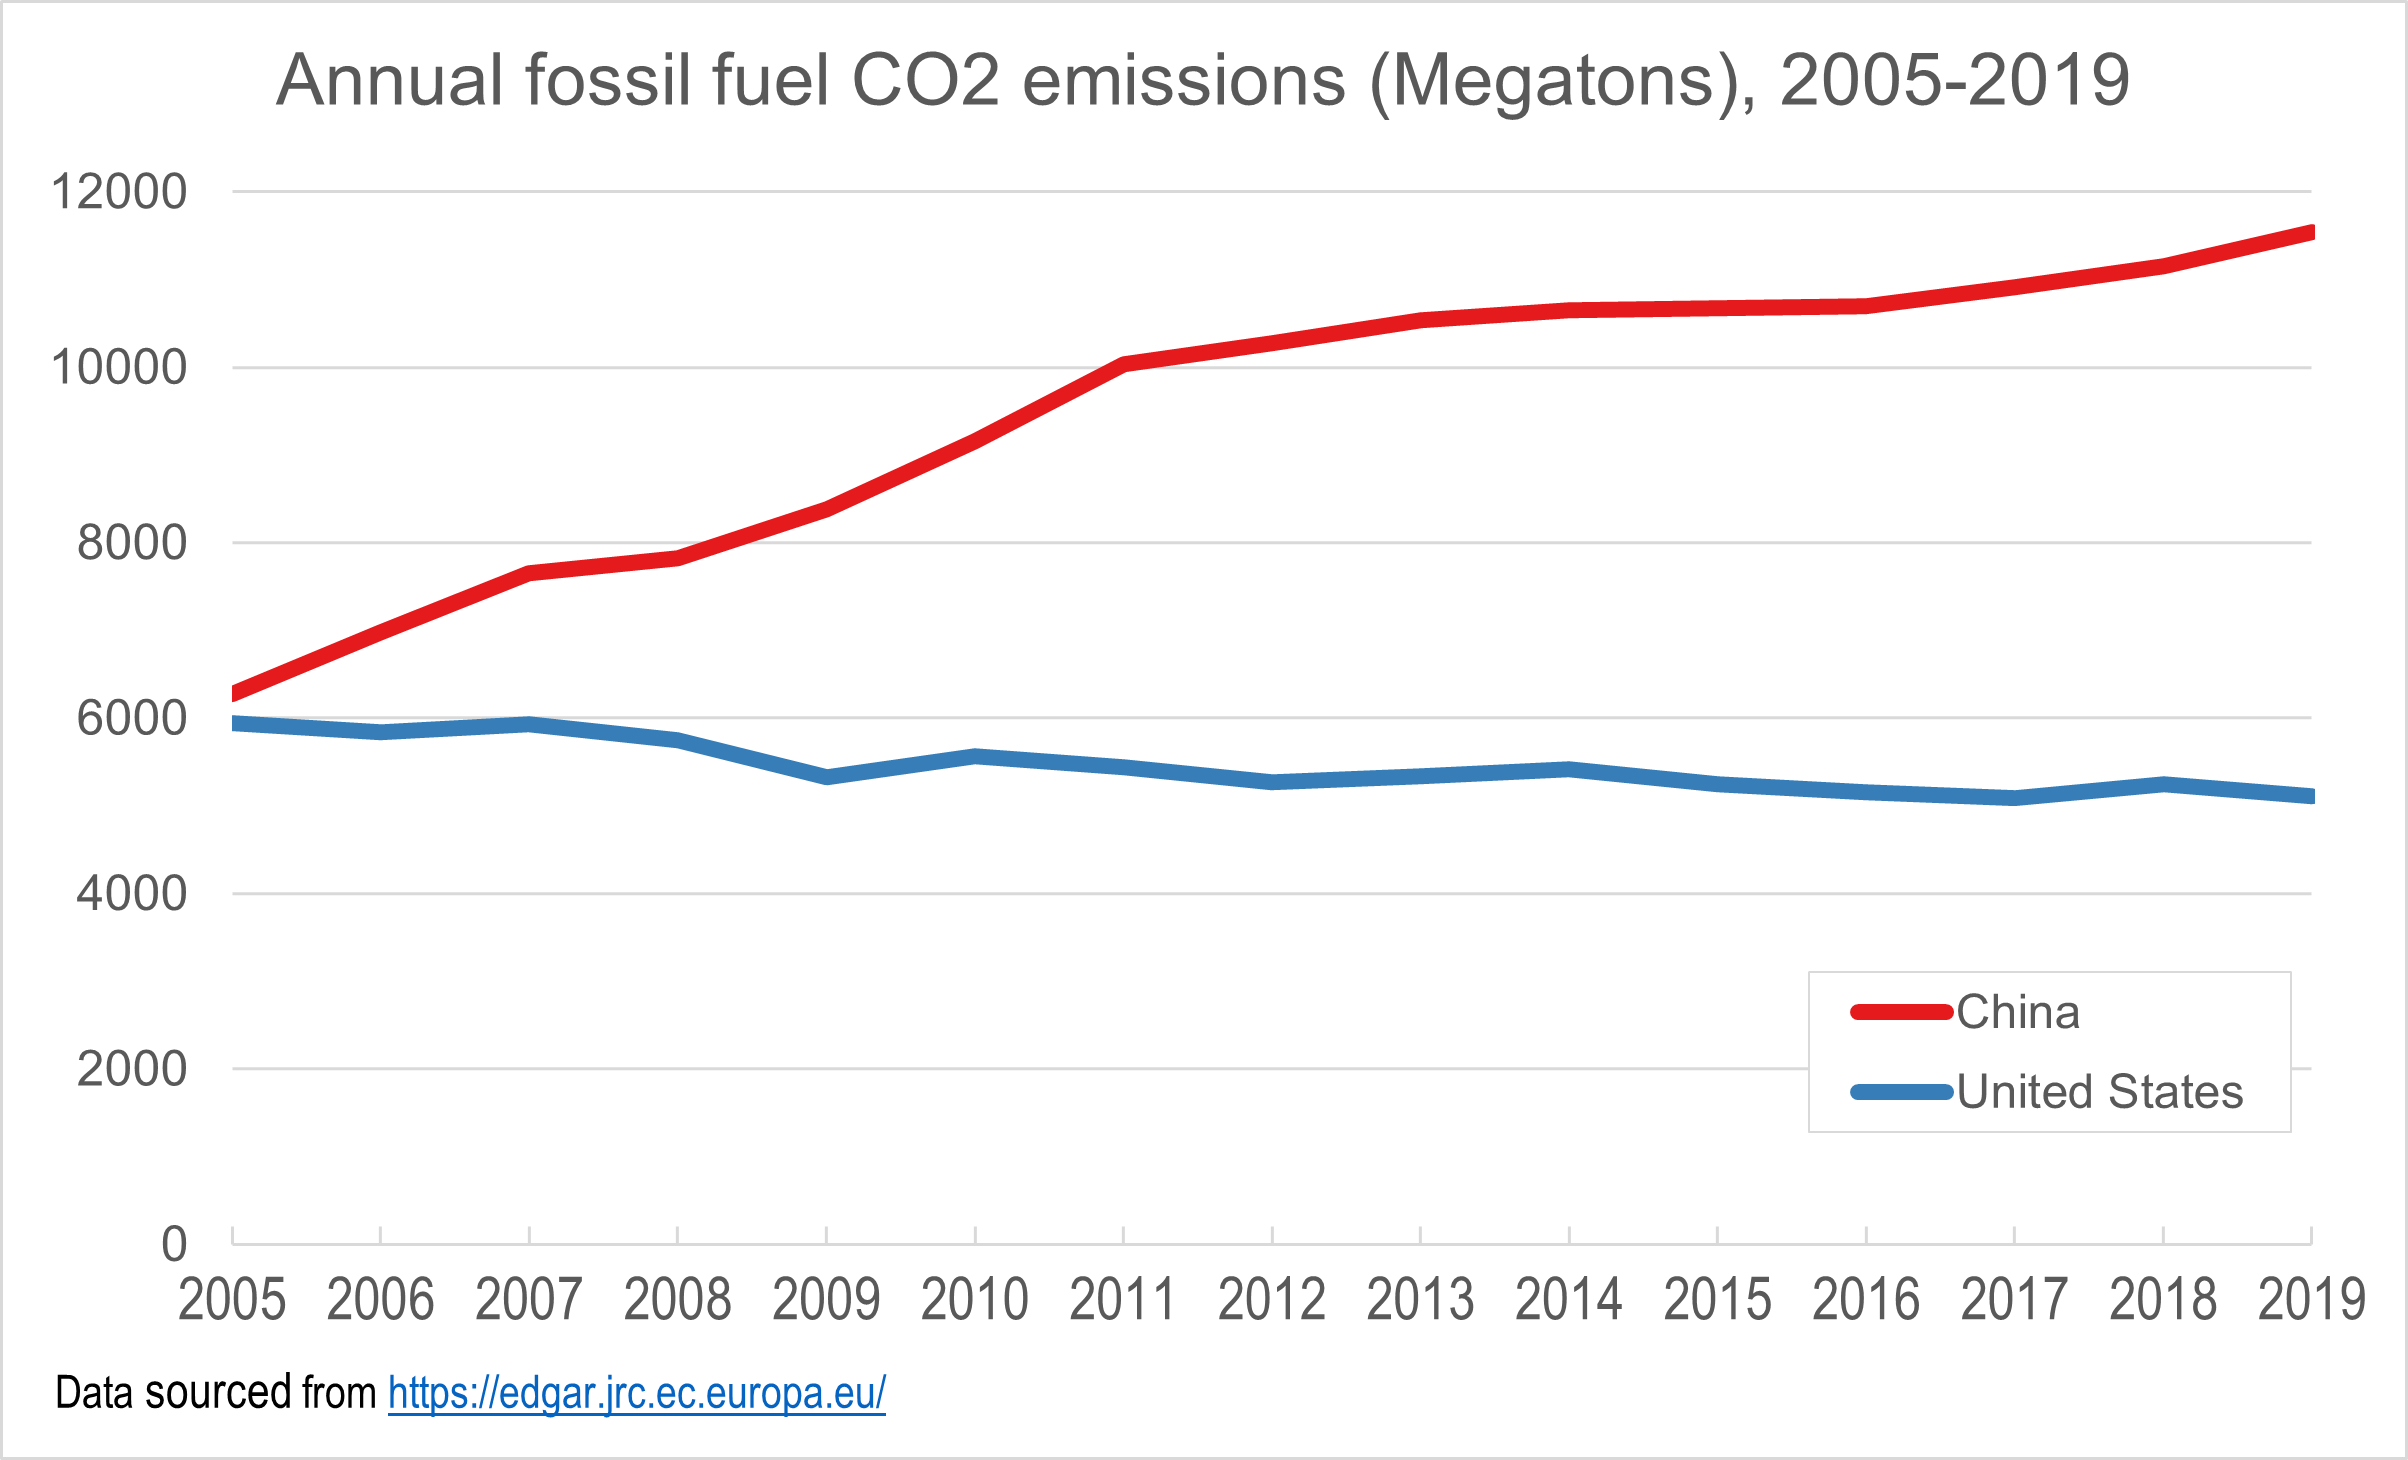 Chart Title: Annual fossil fuel CO2 emissions (Megatons), 2005-2019. Chart compares China and United States; X axis shows years from 2005-2019 and Y axis shows CO2 emissions (Megatons). The line for China increases and line for United States decreases over the time period. Data sourced from https://edgar.jrc.ec.europa.eu/